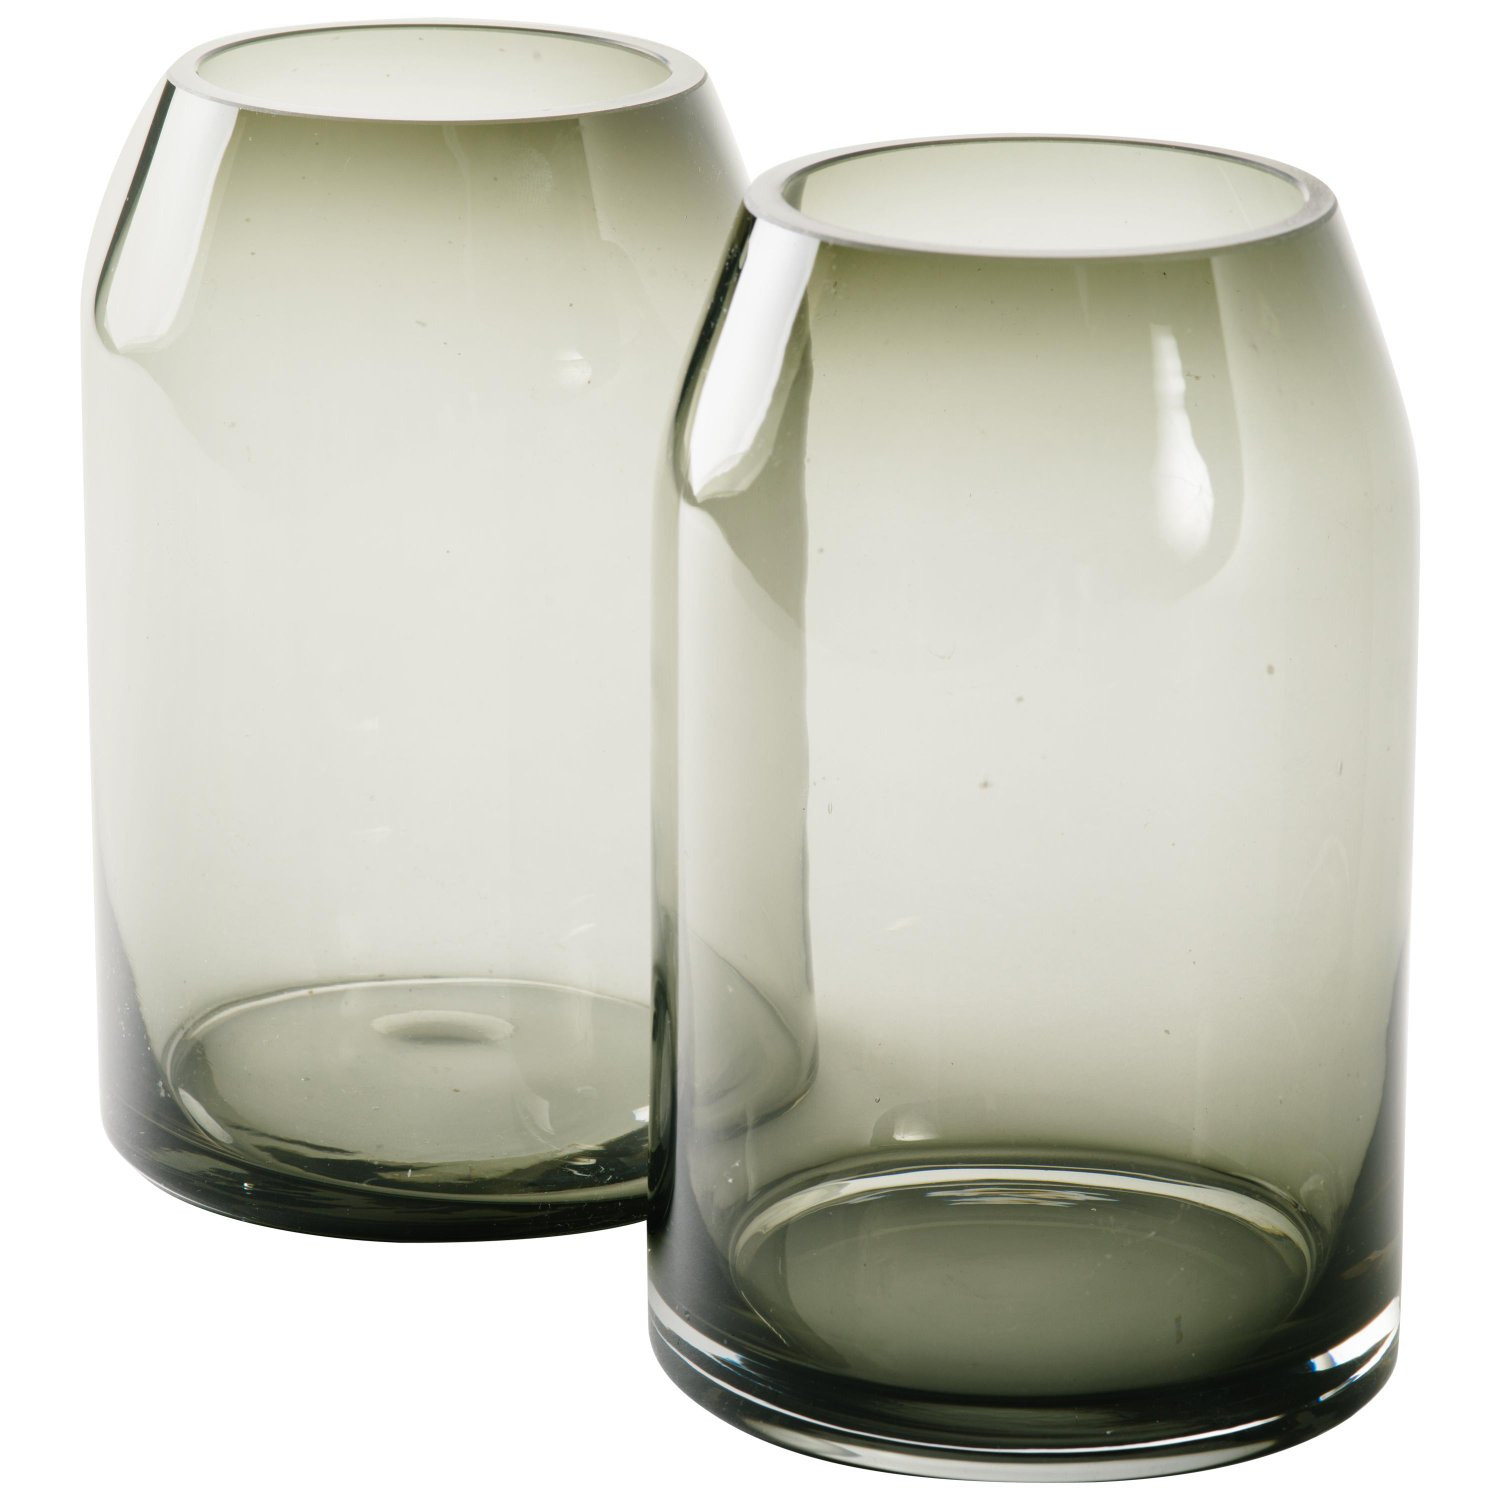 blown glass teardrop vases of pair of vintage sommerso smoked glass vases for sale at 1stdibs inside 11393911 master